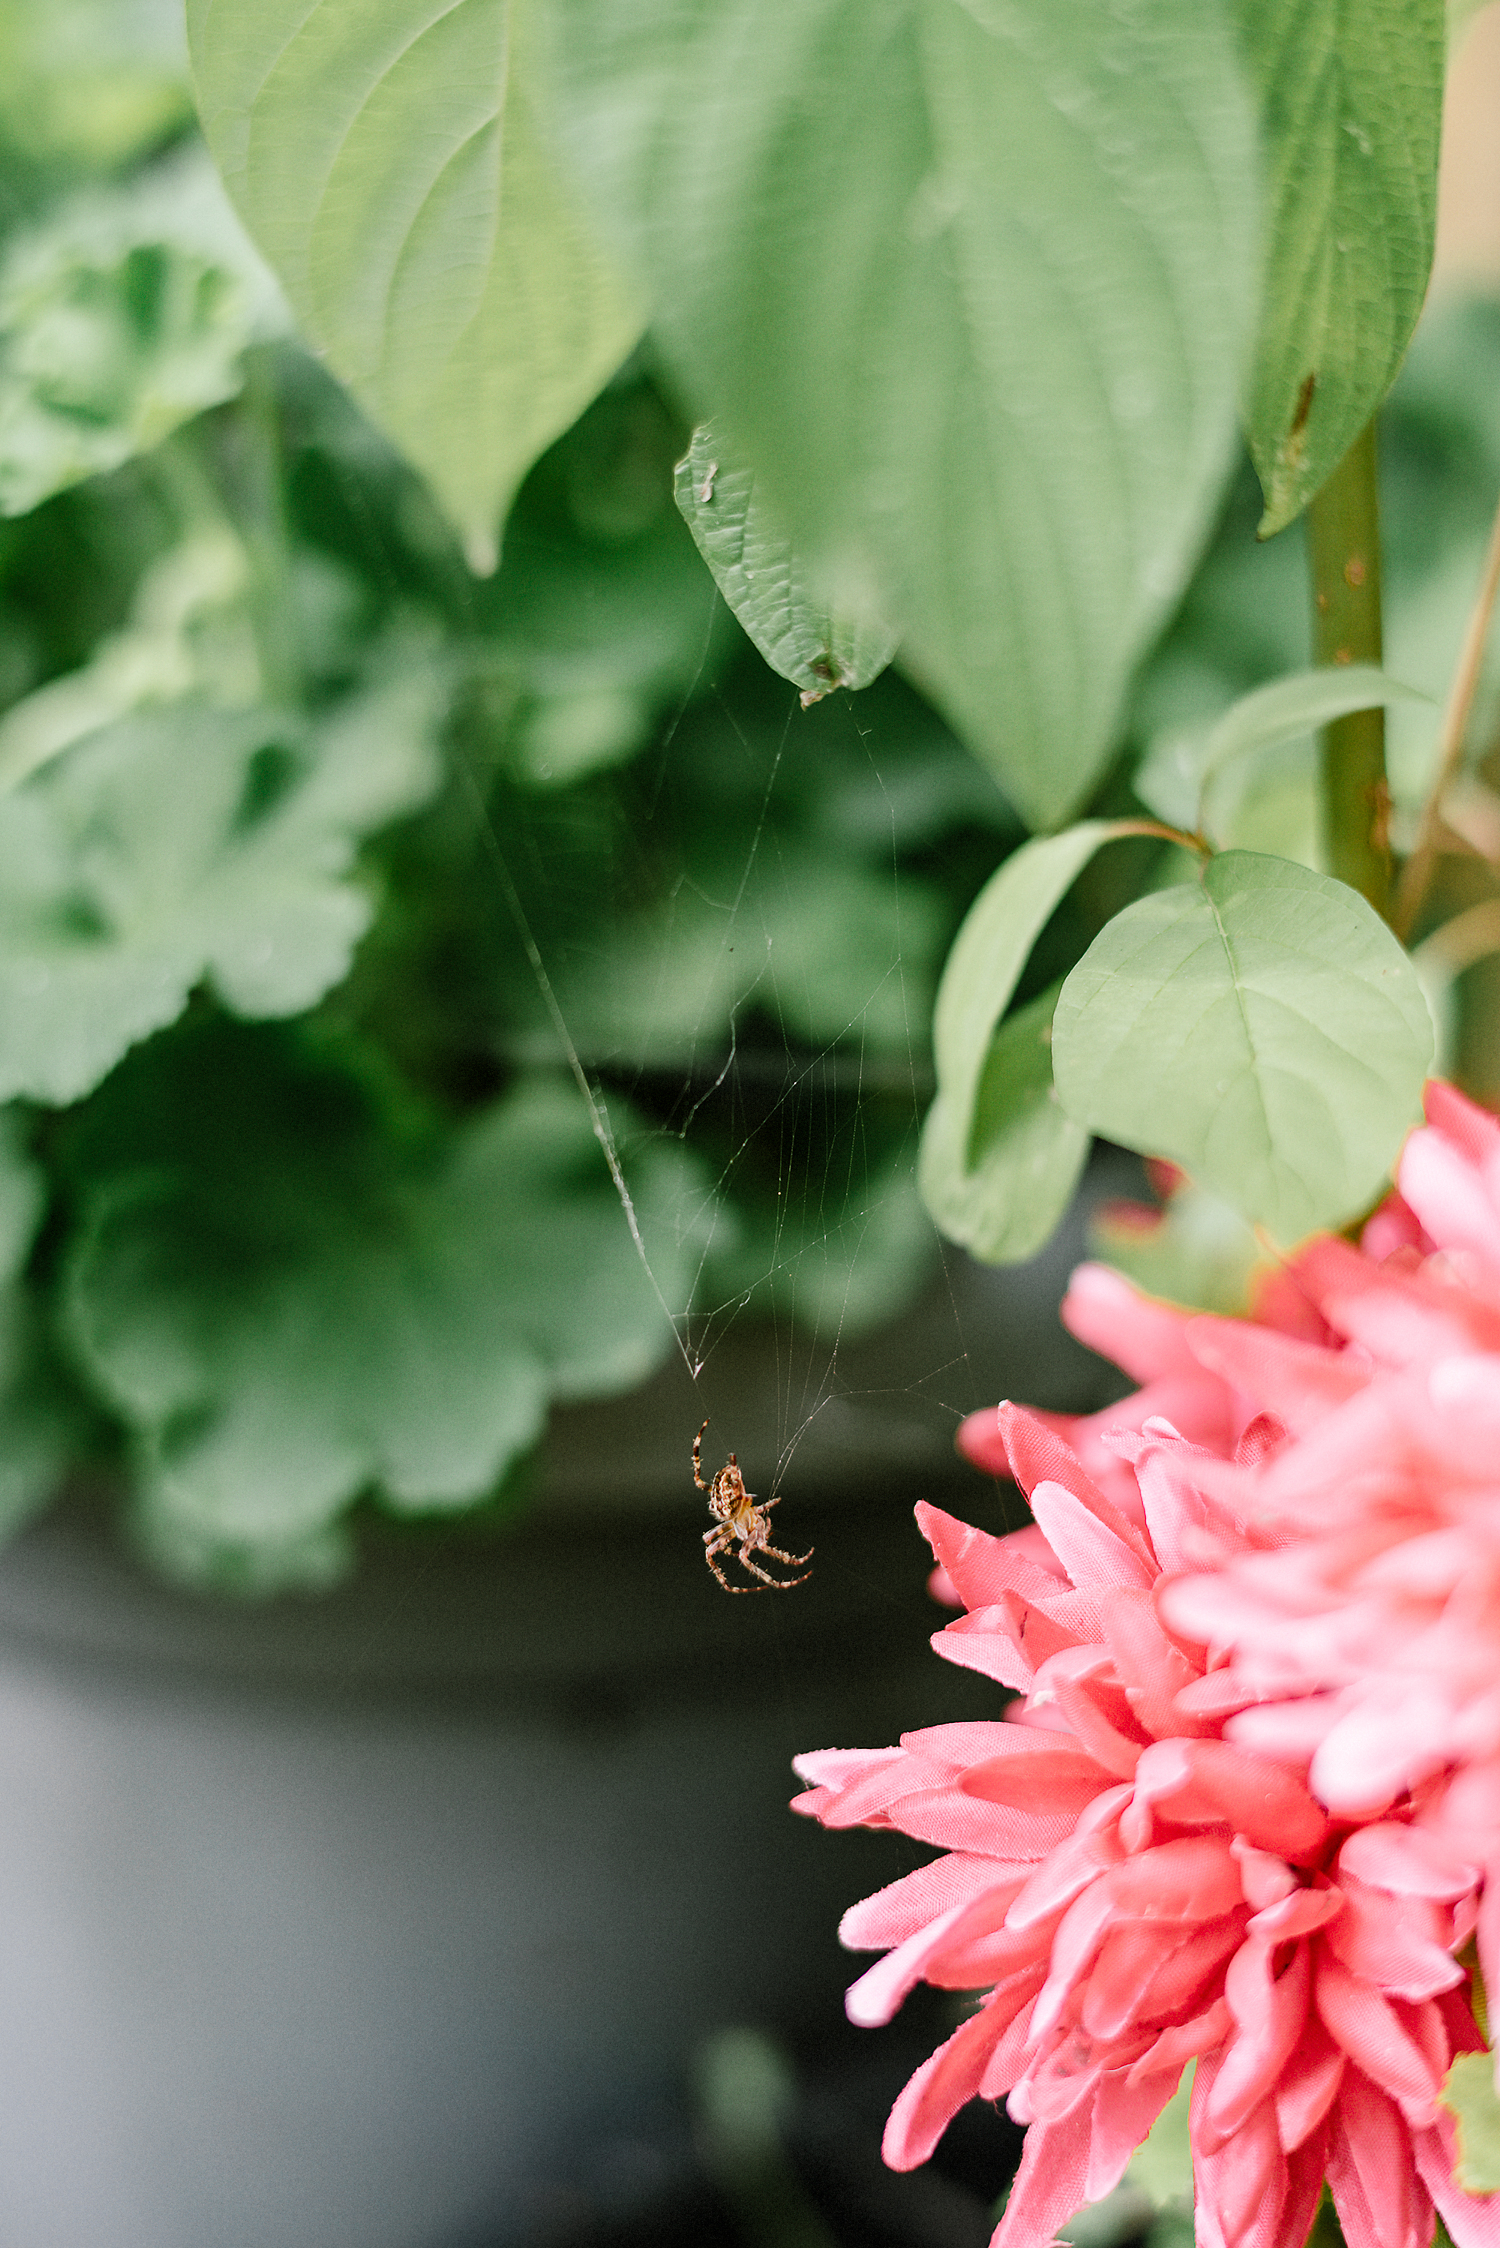 Best-Wedding-Photographers-Toronto-with-a-documentary-photojournalistic-approach-and-style-Toronto-Island-Cafe-Clubhouse-Wedding-Photography-Hip-Cool-Bride-and-Groom-Islaand-Clubhouse-Ceremony-Vintage-Spider-Flower-Detail.jpg